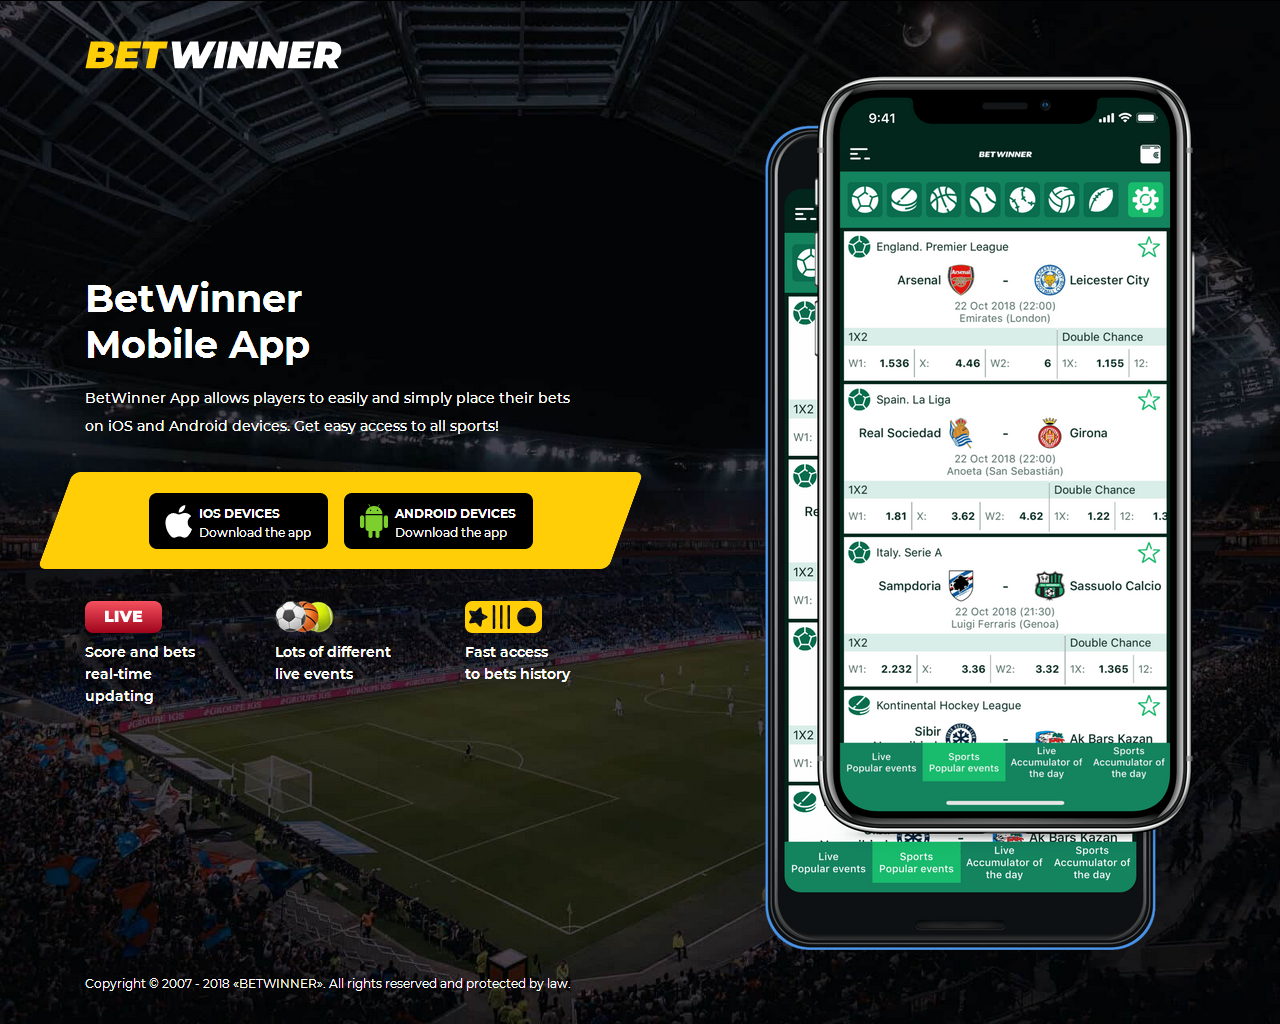 Betwinner Mobile APP - Download and install it!